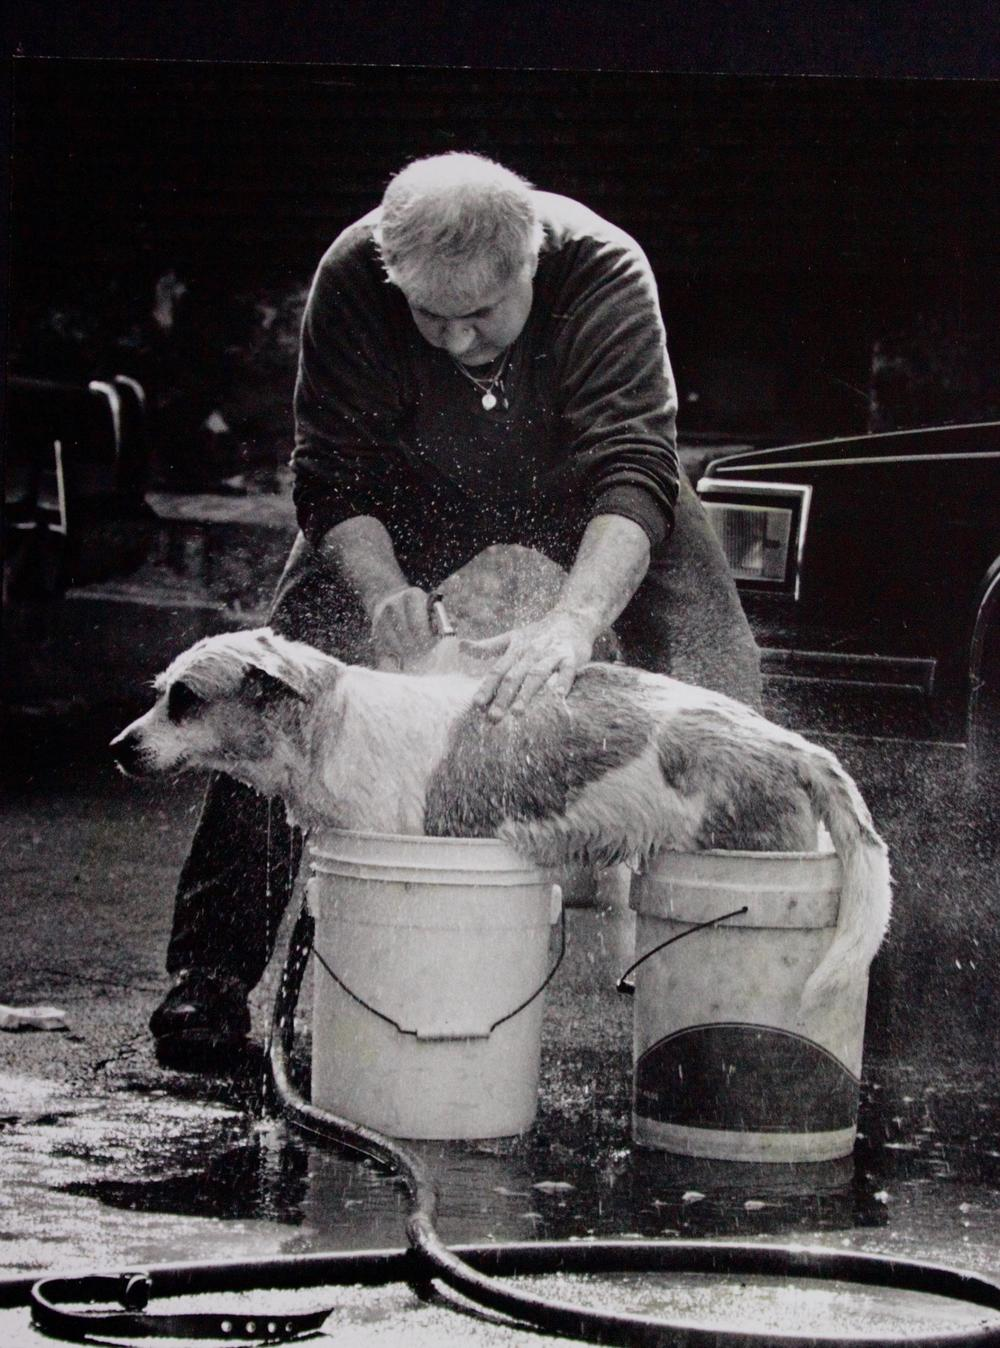 Jersey City dog wash. Photograph by Bill Bayer.